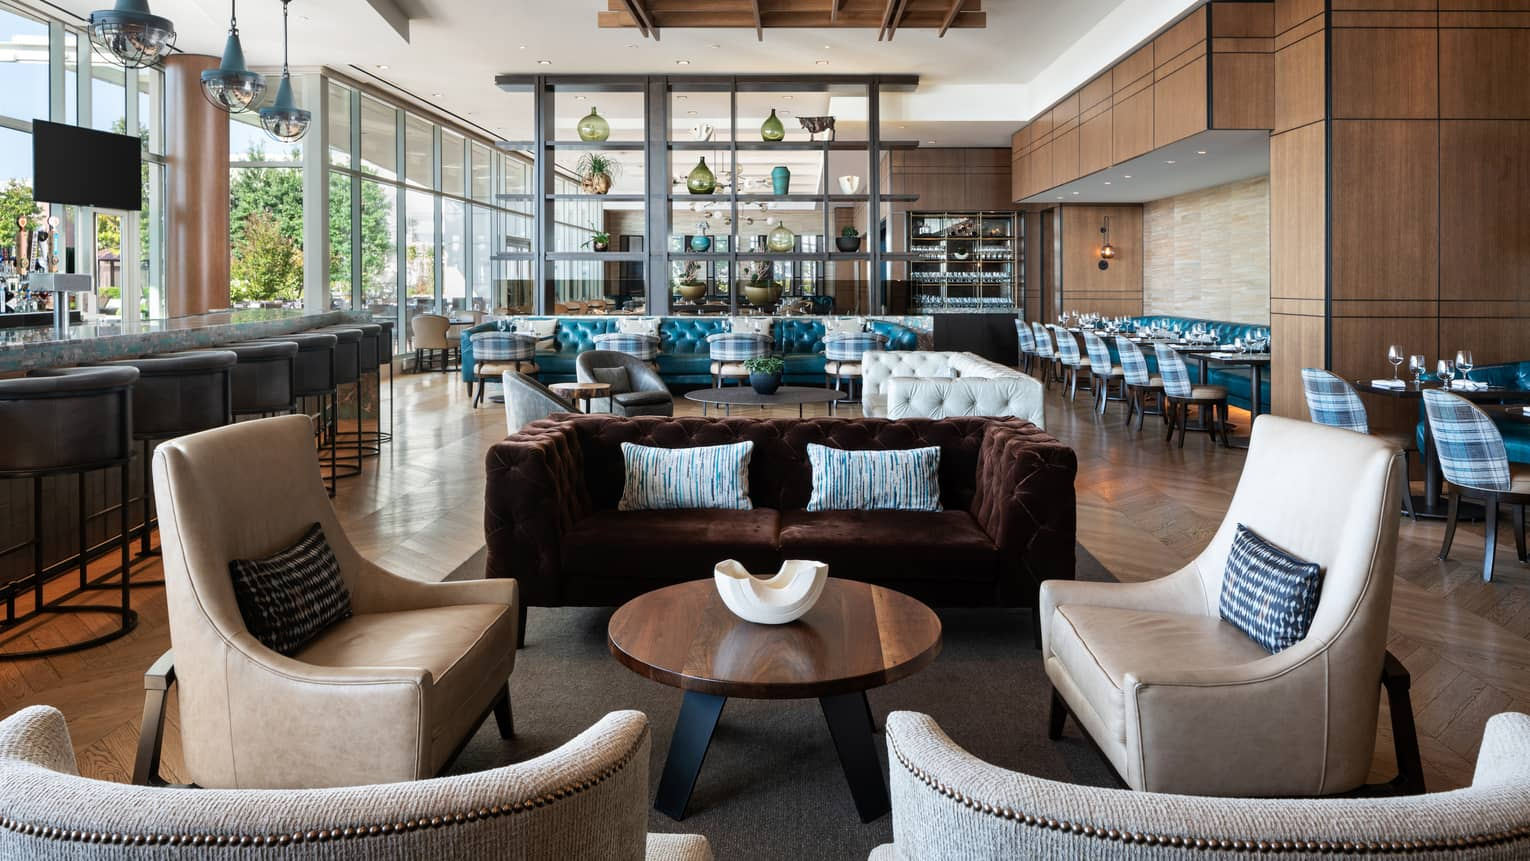 The interior of cinderhouse restaurant at four seasons saint louis is decorated with a navy accent wall, light wooden floor with a chevron style, black tables and camel colored leather chairs